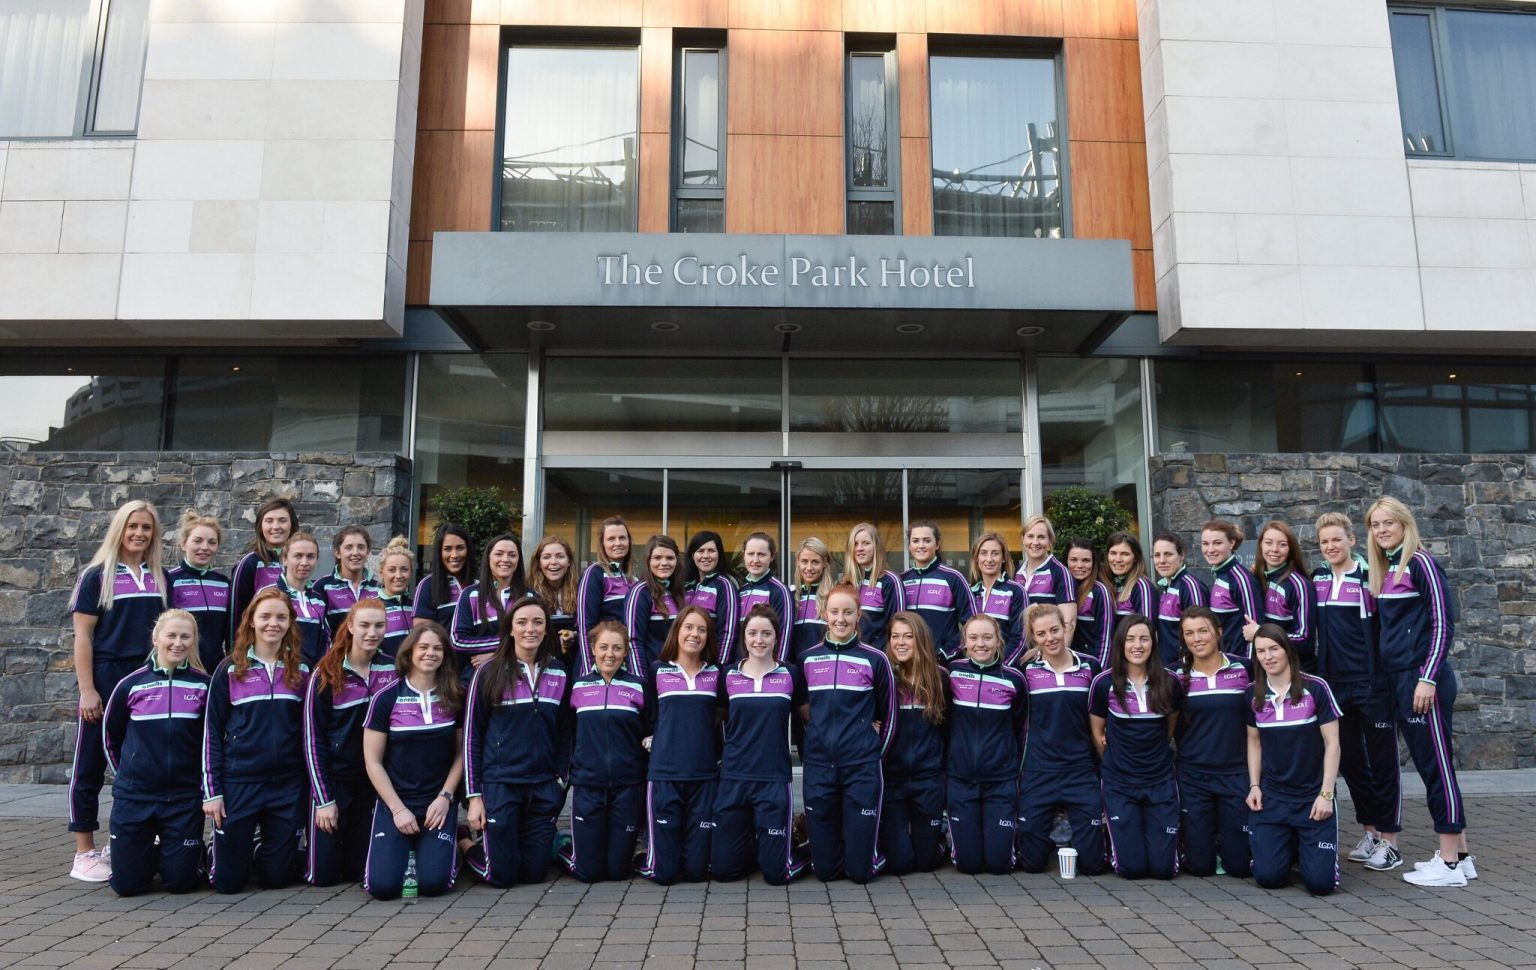 The TG4 Ladies Football All-Star Tour 2018 players assemble for a group photo ahead of departure to Bangkok at the Croke Park hotel, Dublin. Photo by Piaras Ó Mídheach/Sportsfile